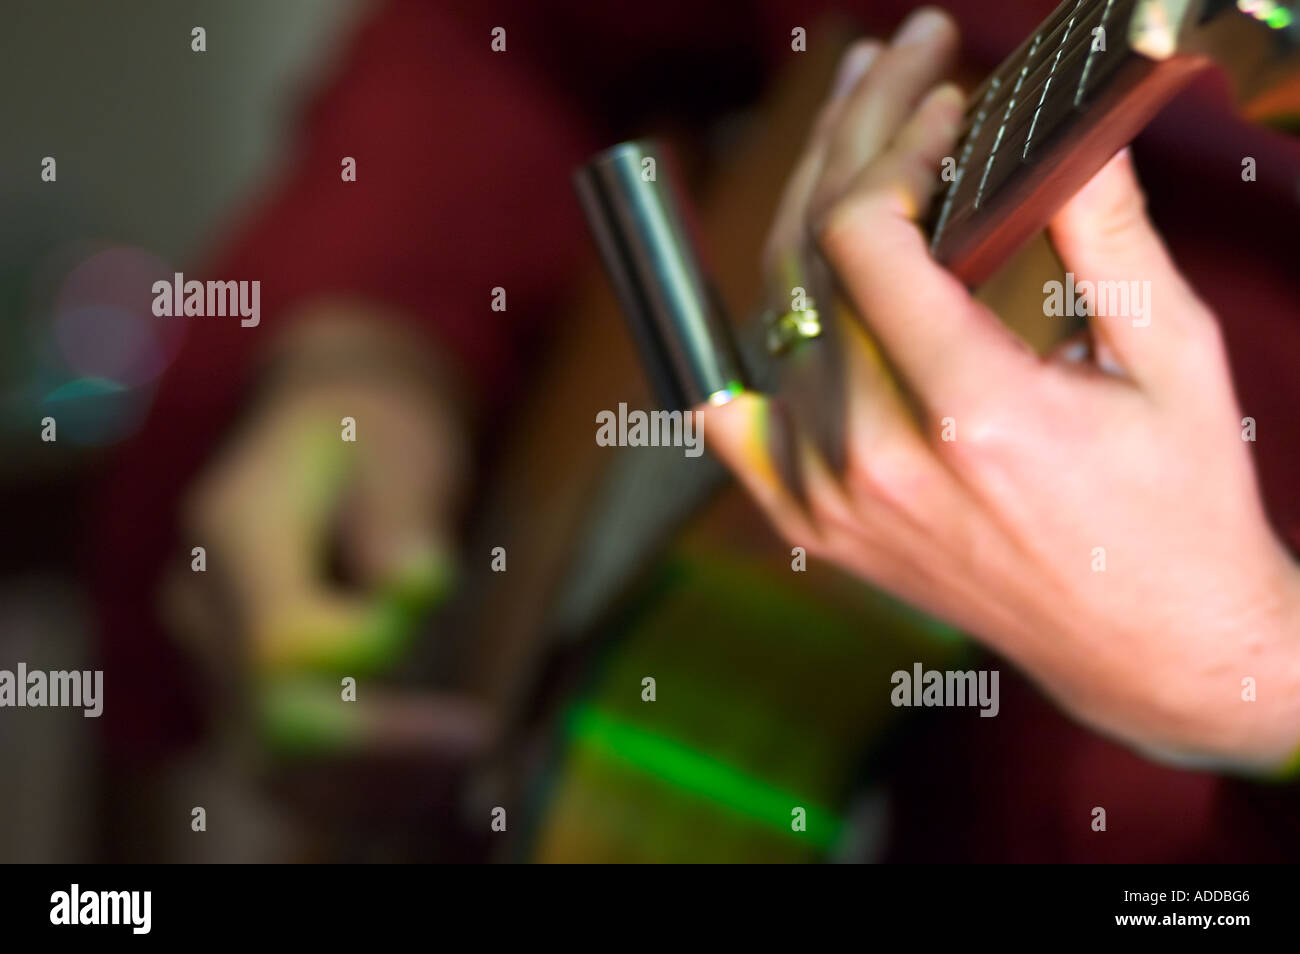 a concert - Stock Image